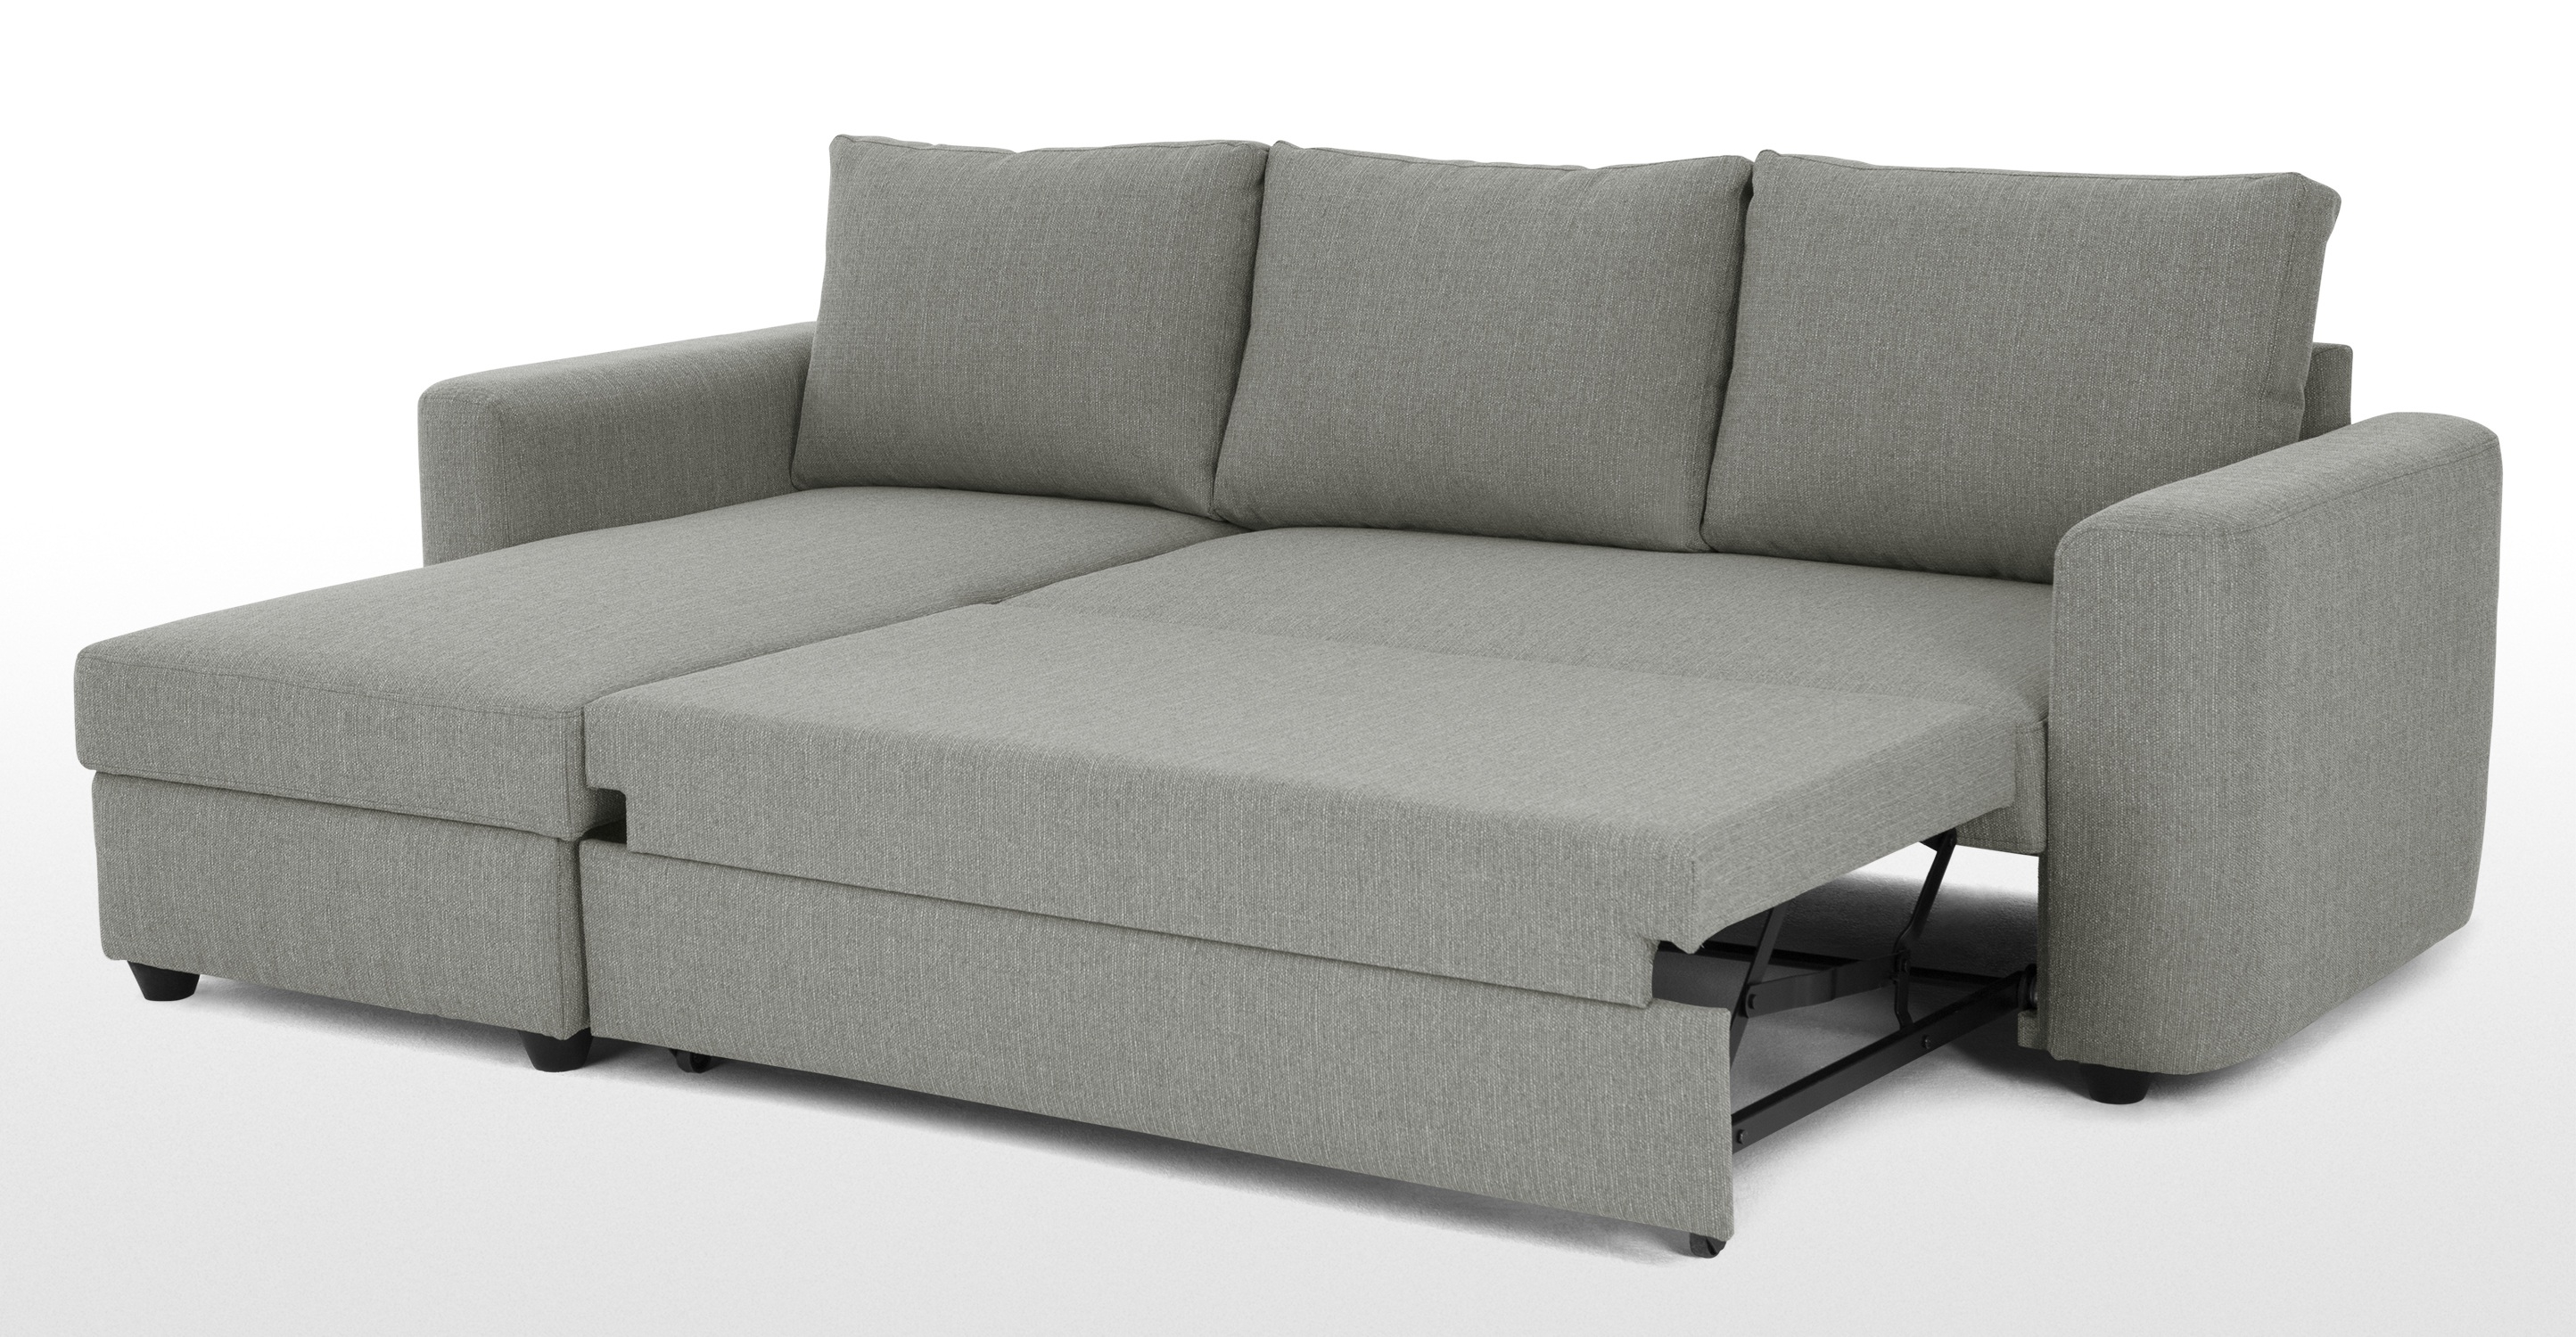 Sofas Center 38 Formidable Corner Sofa Bed Picture Ideas Corner Regarding Cheap Corner Sofa Bed (Image 9 of 15)